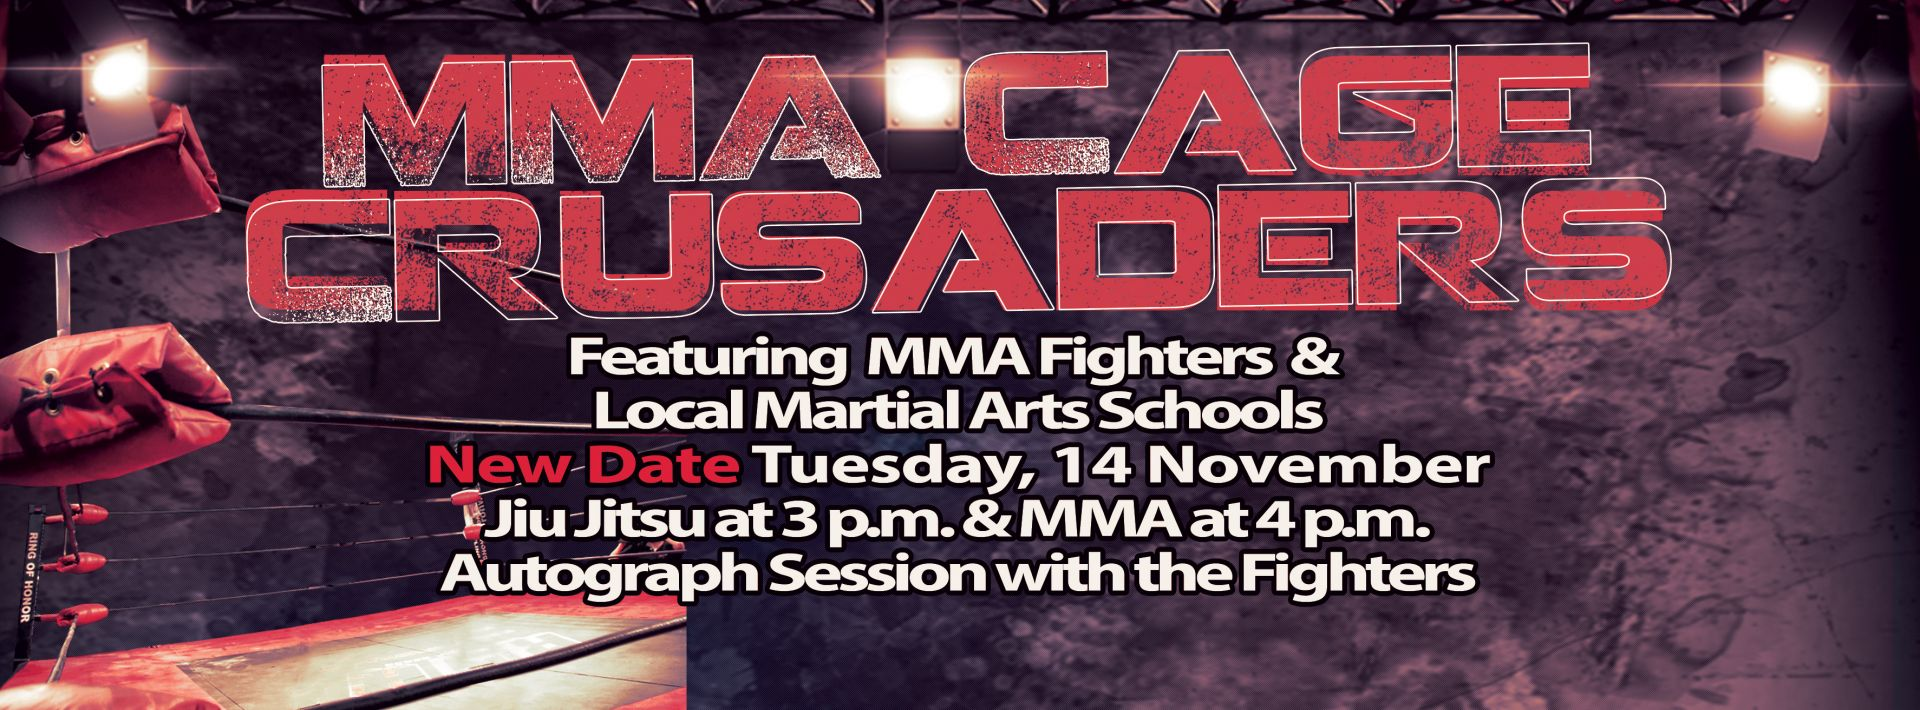 MMA Cage Crusaders